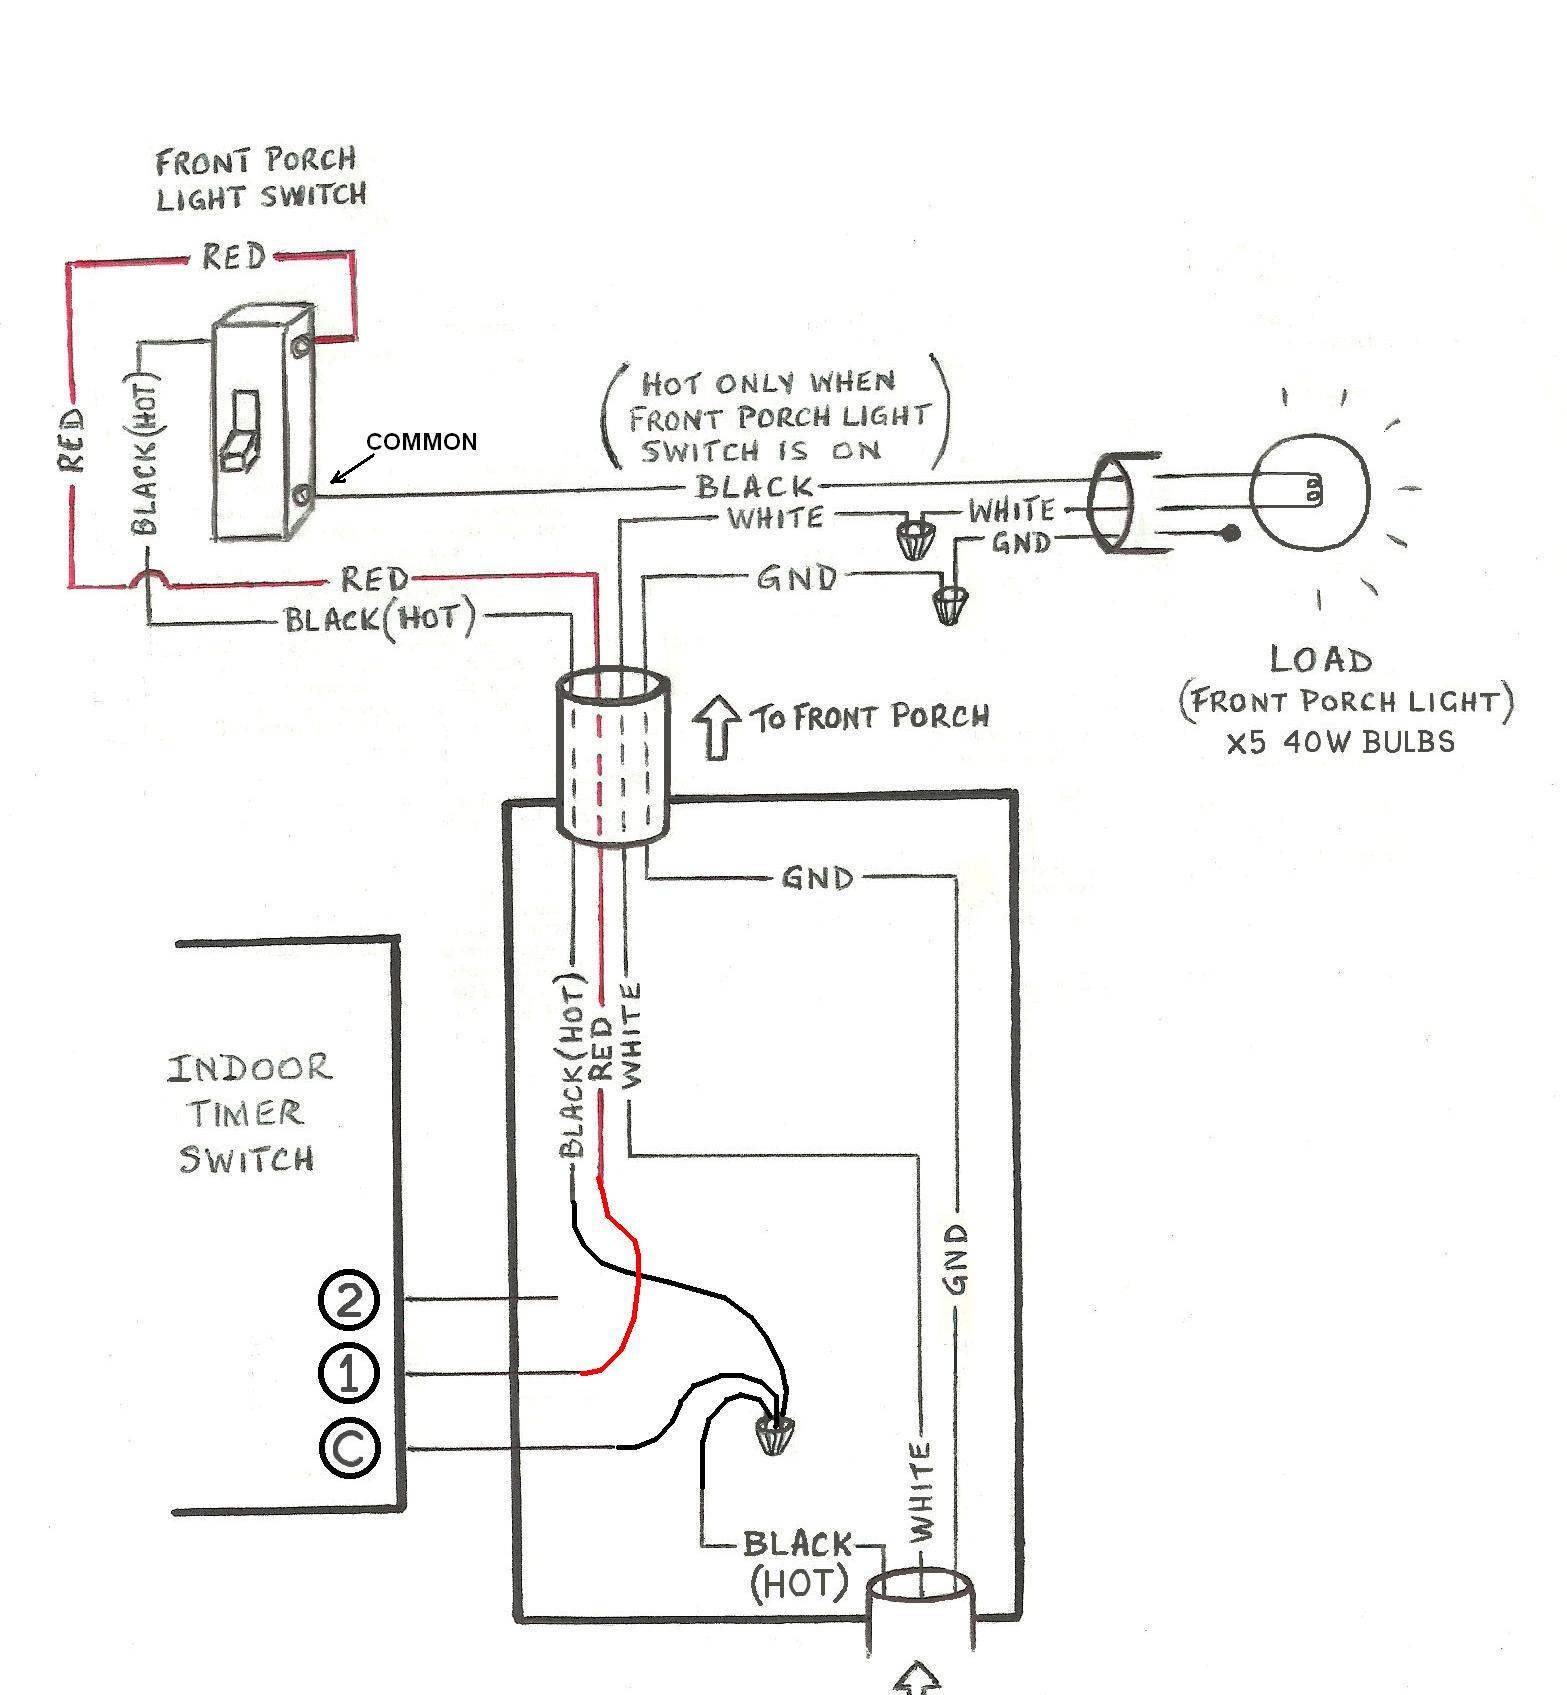 hight resolution of way switch hook up diagram likewise how to install a dimmer switch wiring dimmer switch furthermore single pole dimmer switch wiring